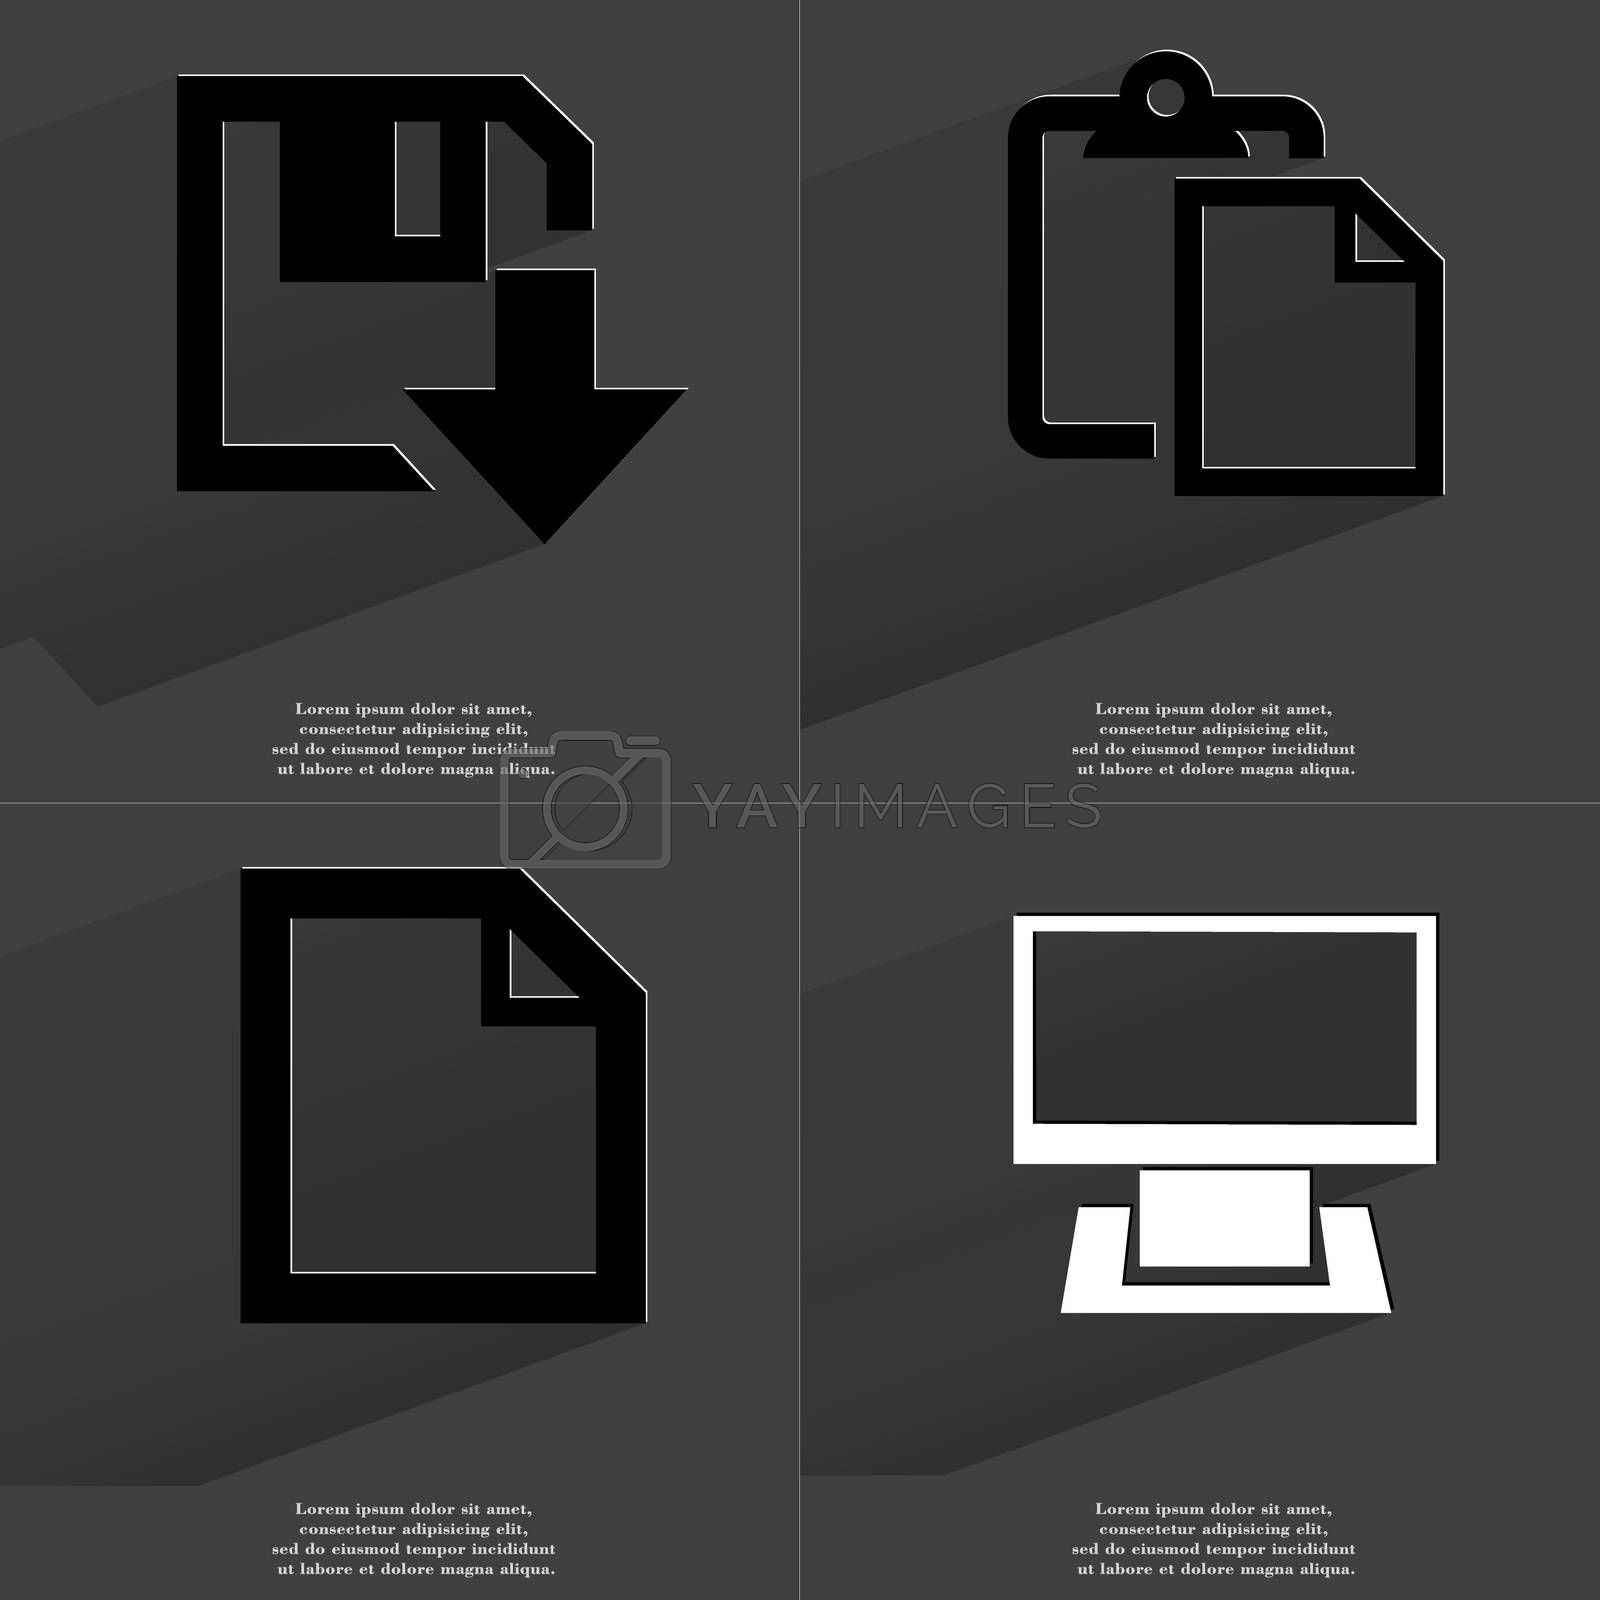 Royalty free image of Floppy disk download icon, Tasklist, File, Monitor. Symbols with long shadow. Flat design by serhii_lohvyniuk